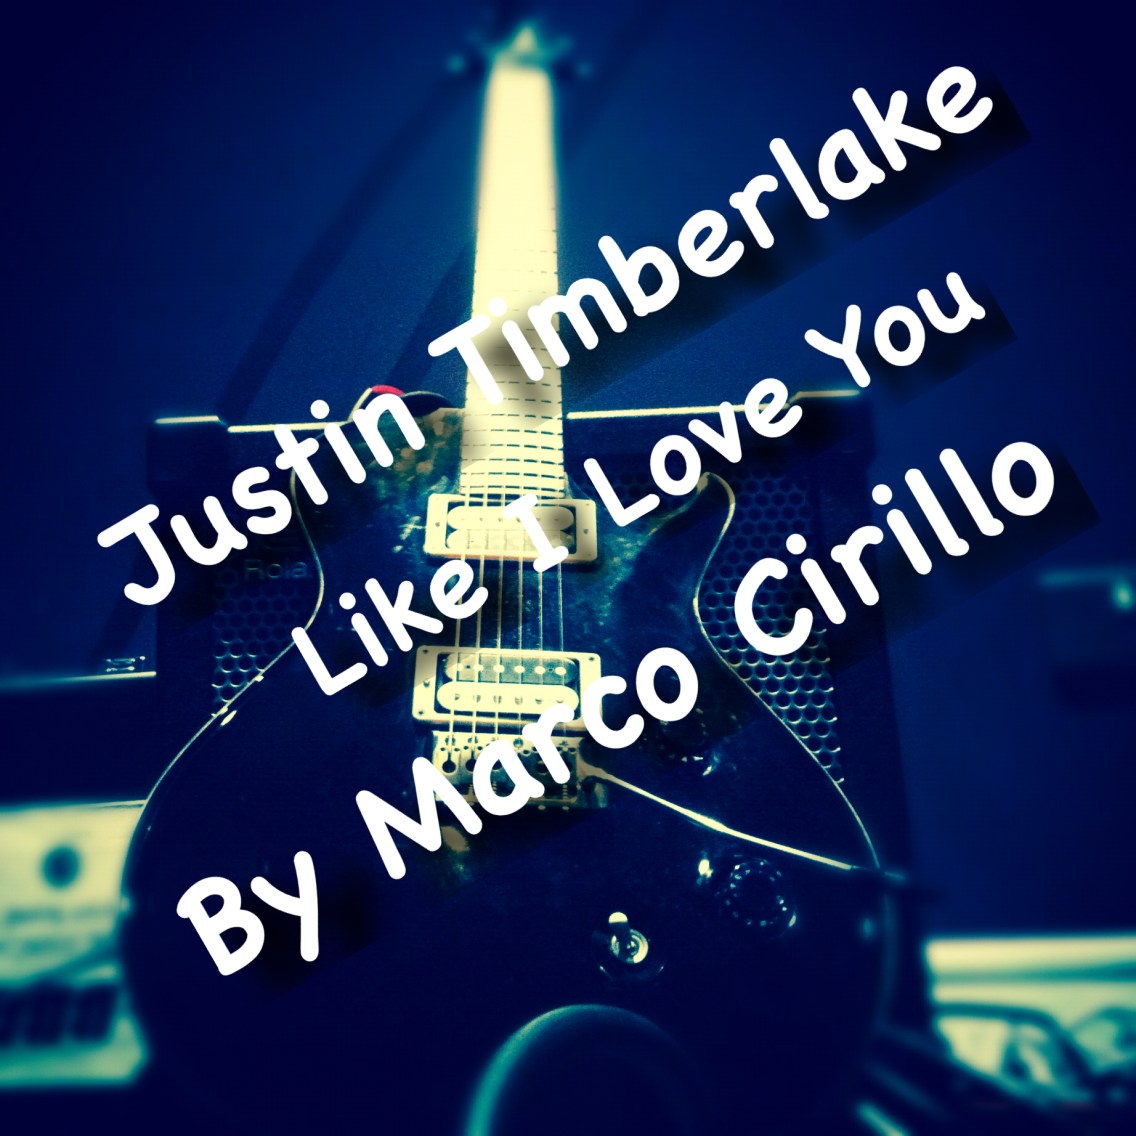 Justin Timberlake Like I Love You - Chords and Tab - Guitar Lesson by Marco Cirillo. Learn the Songs you Love. Guitar Lesson North West London -